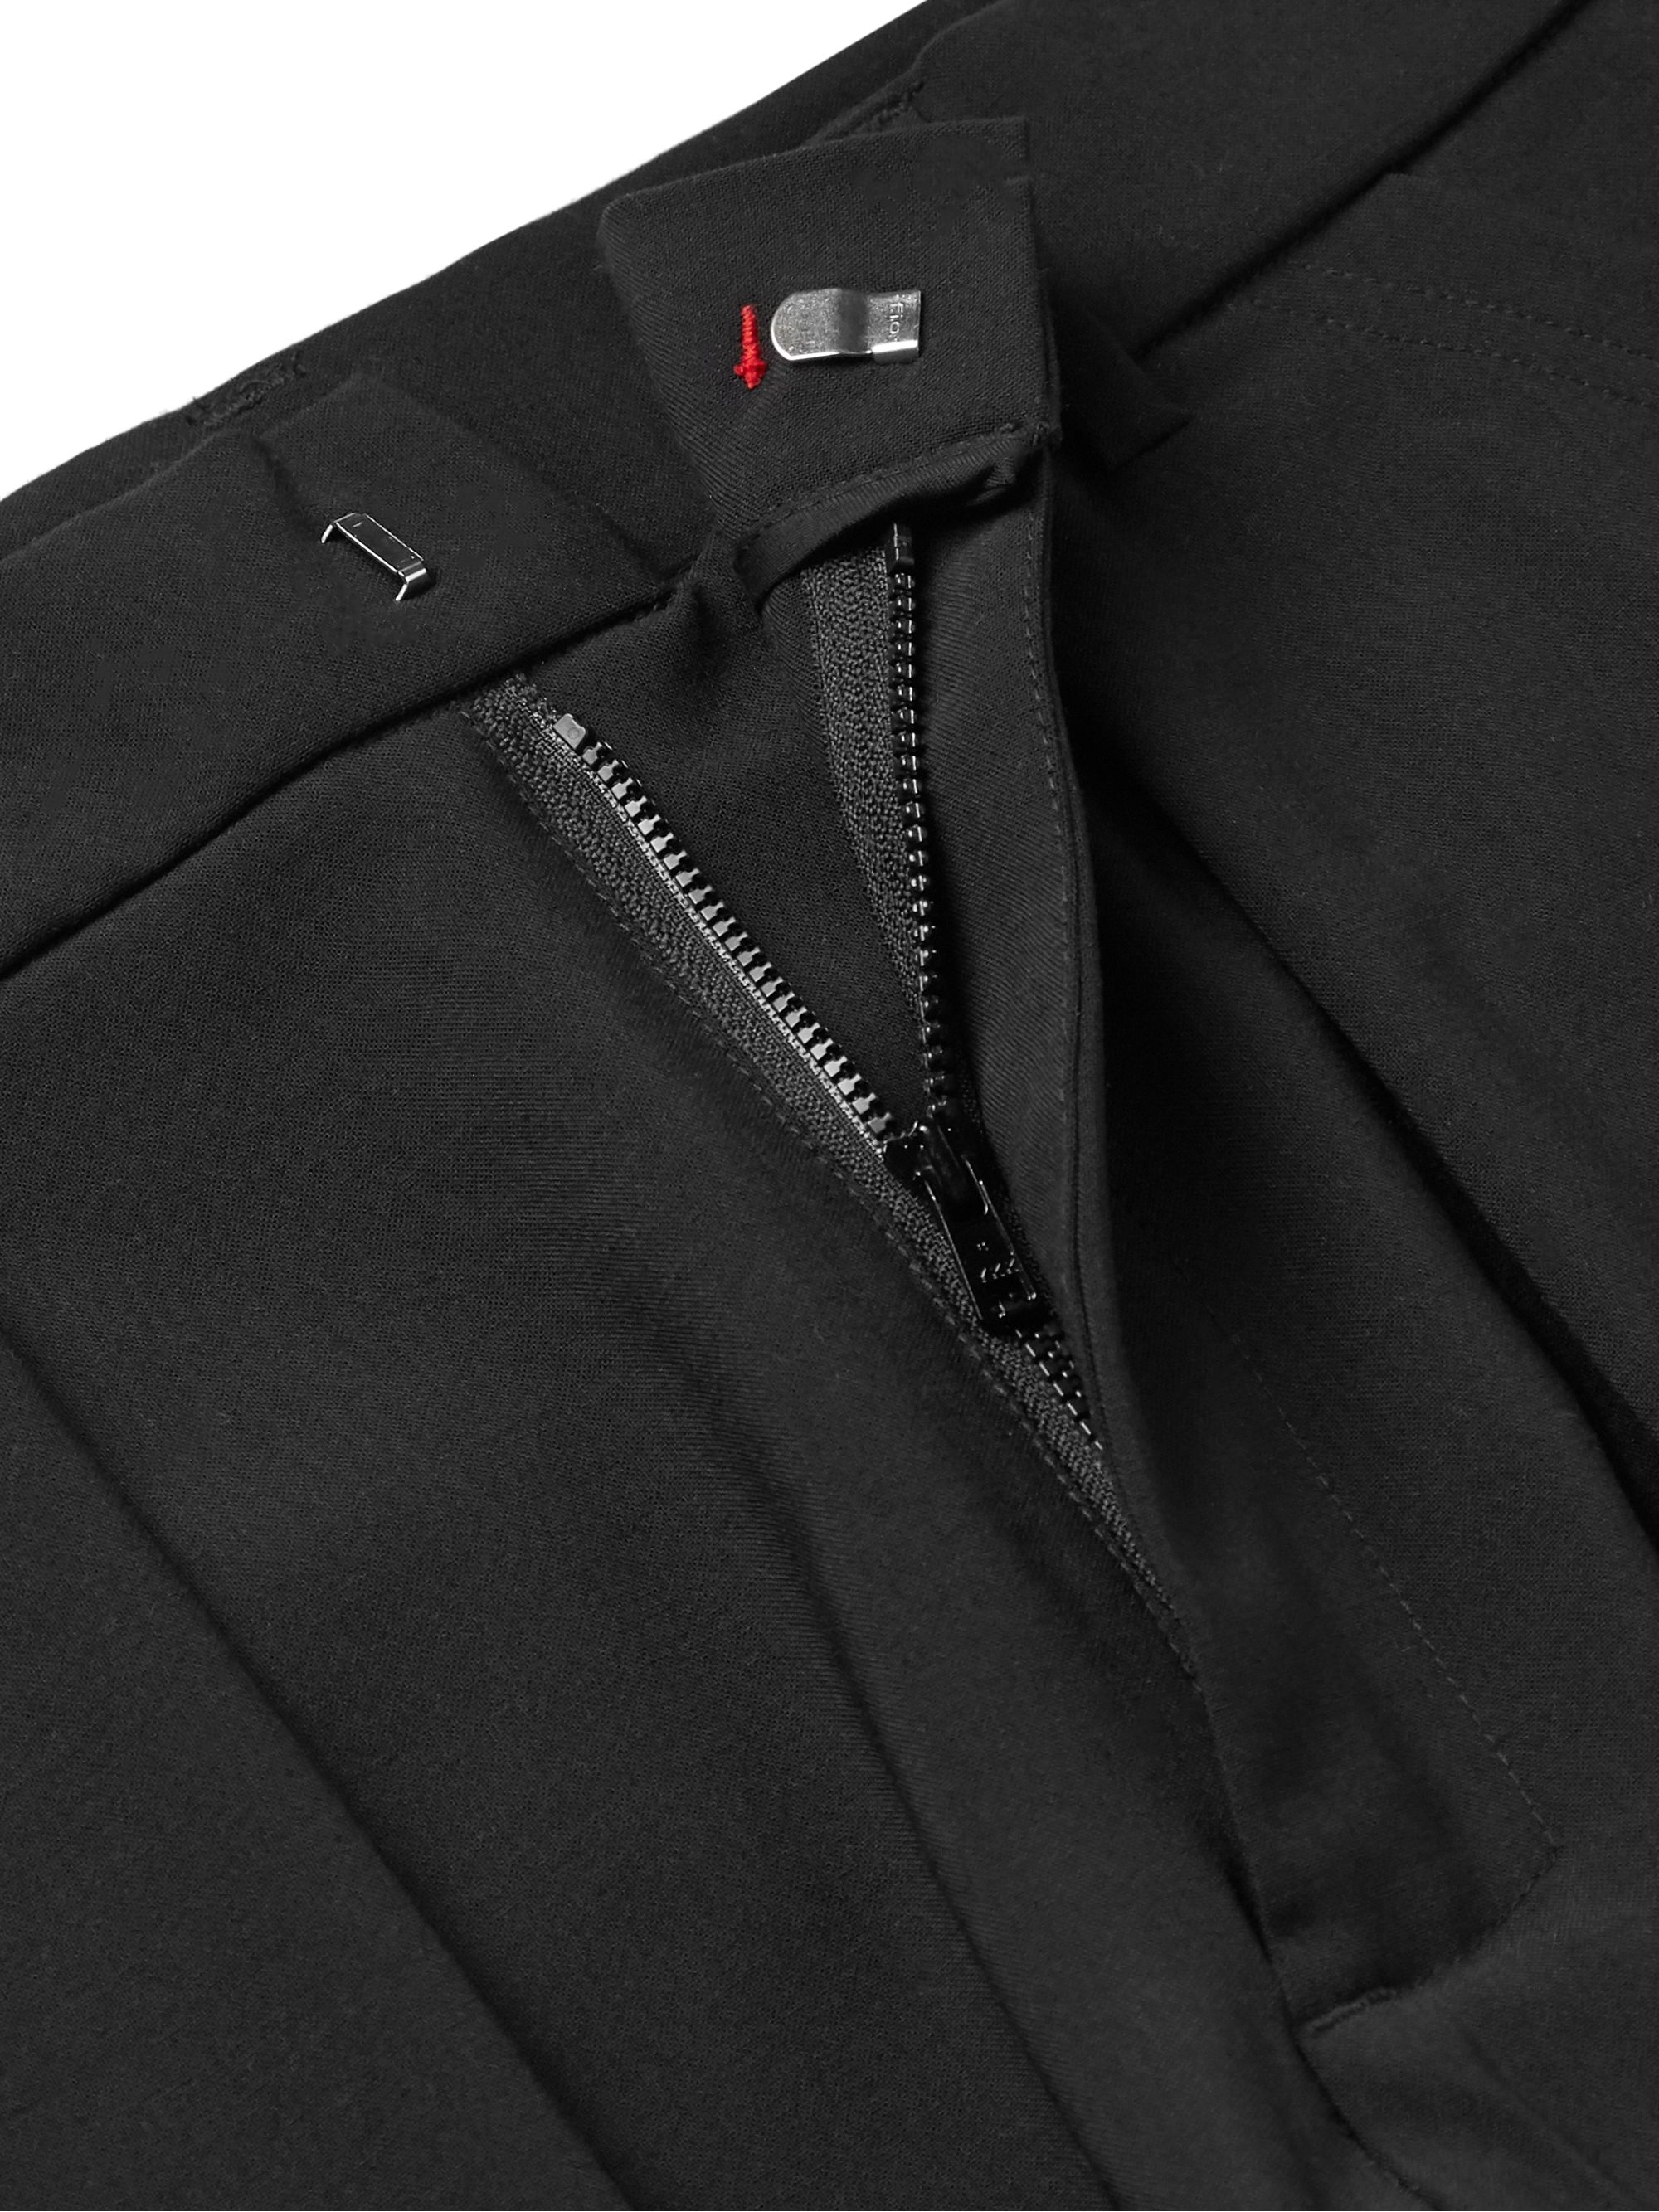 424 Black Slim-Fit Woven Cargo Trousers